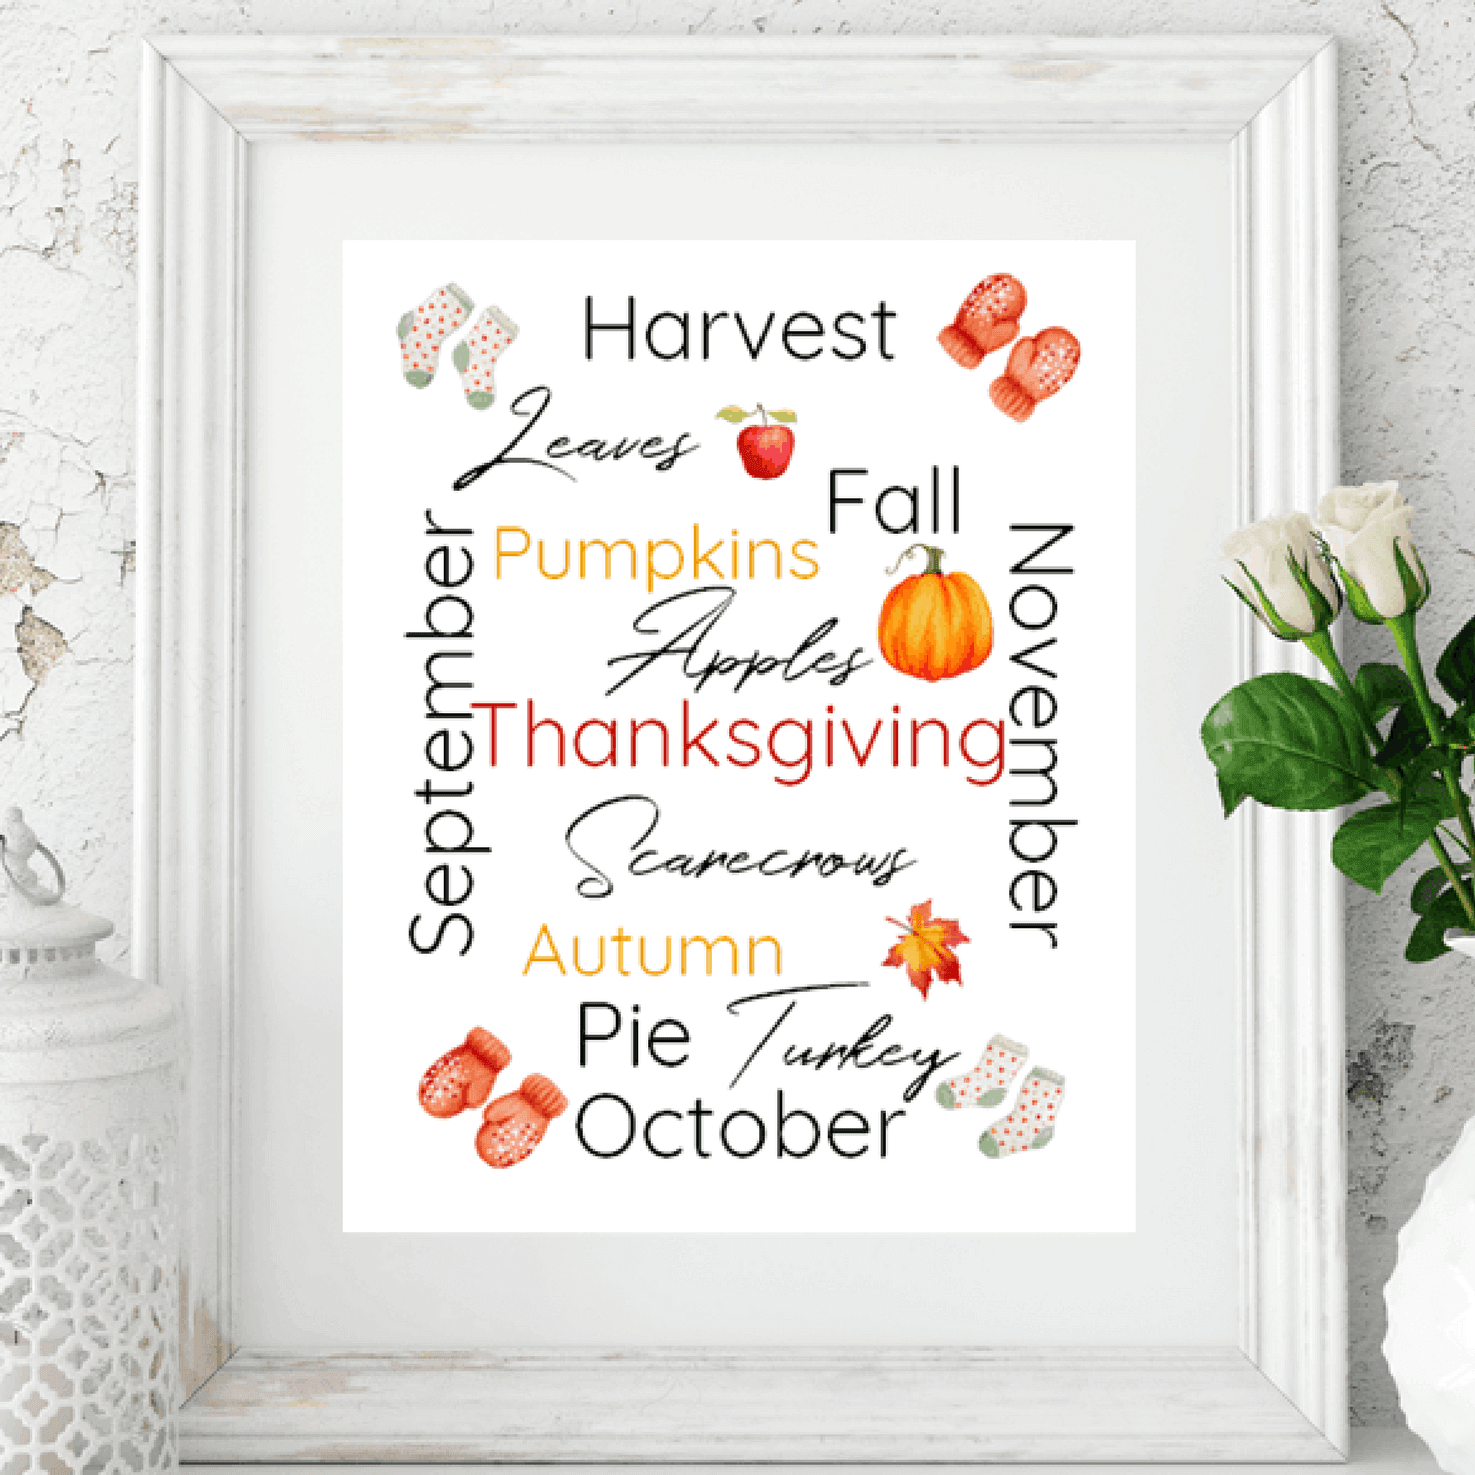 Printable for Autumn/Fall